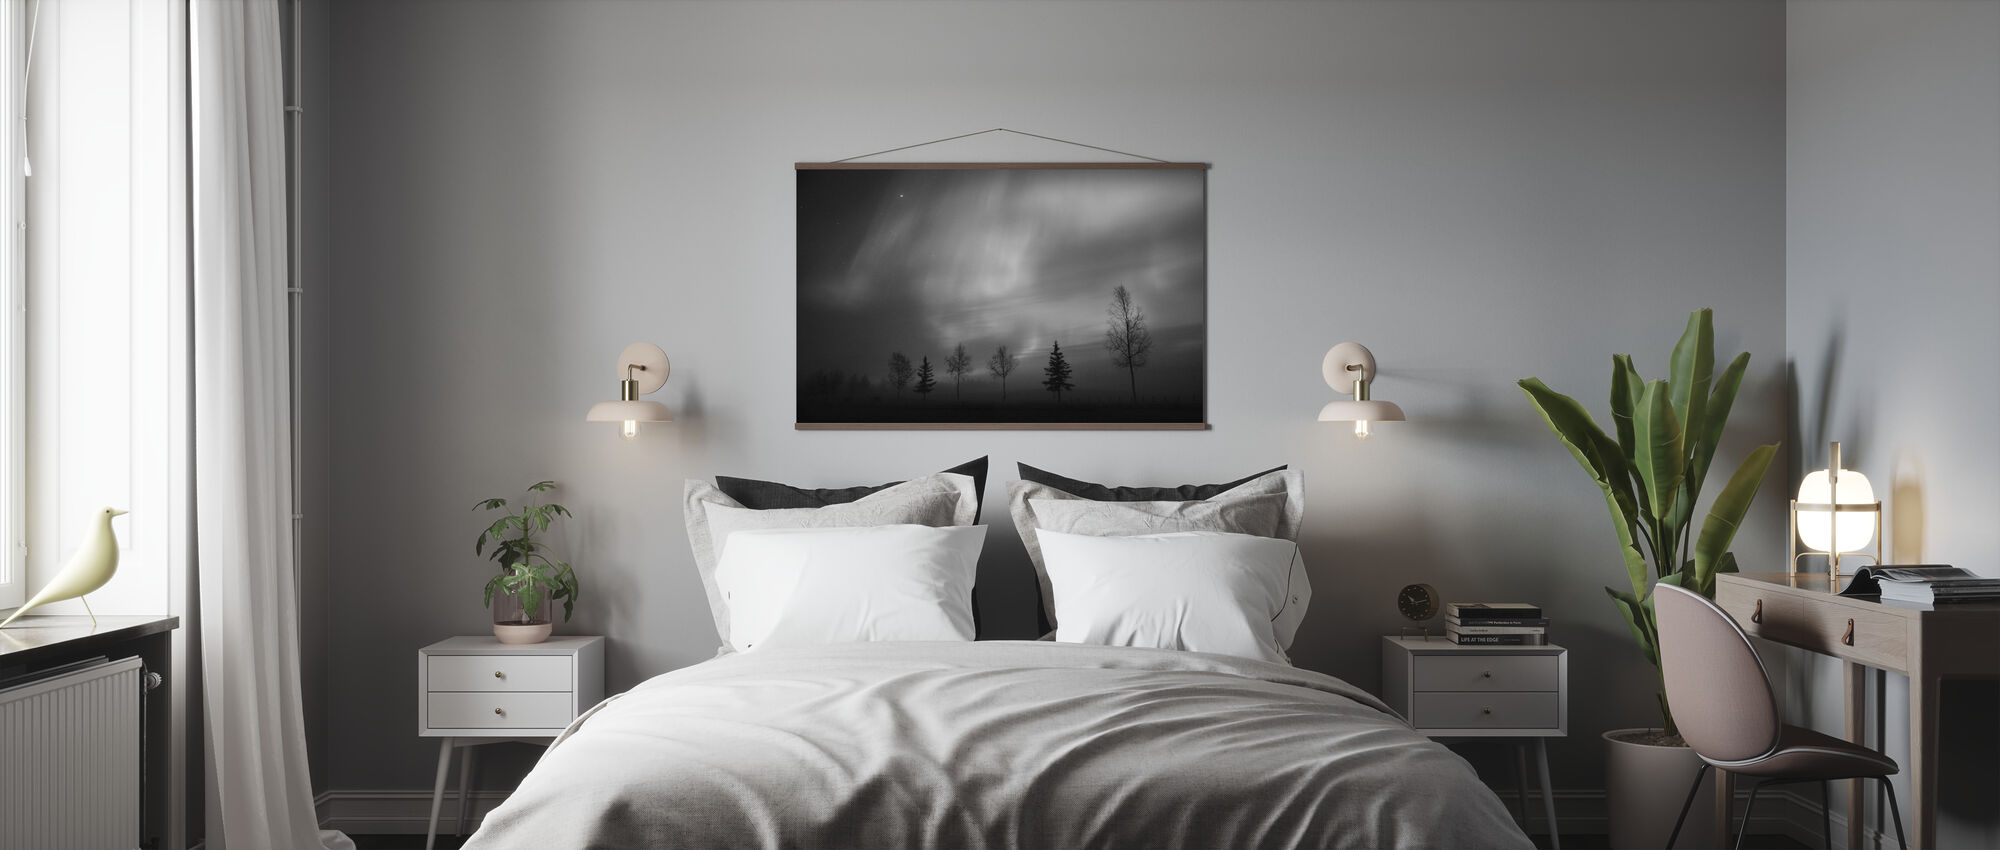 Nordic Lights - Poster - Bedroom